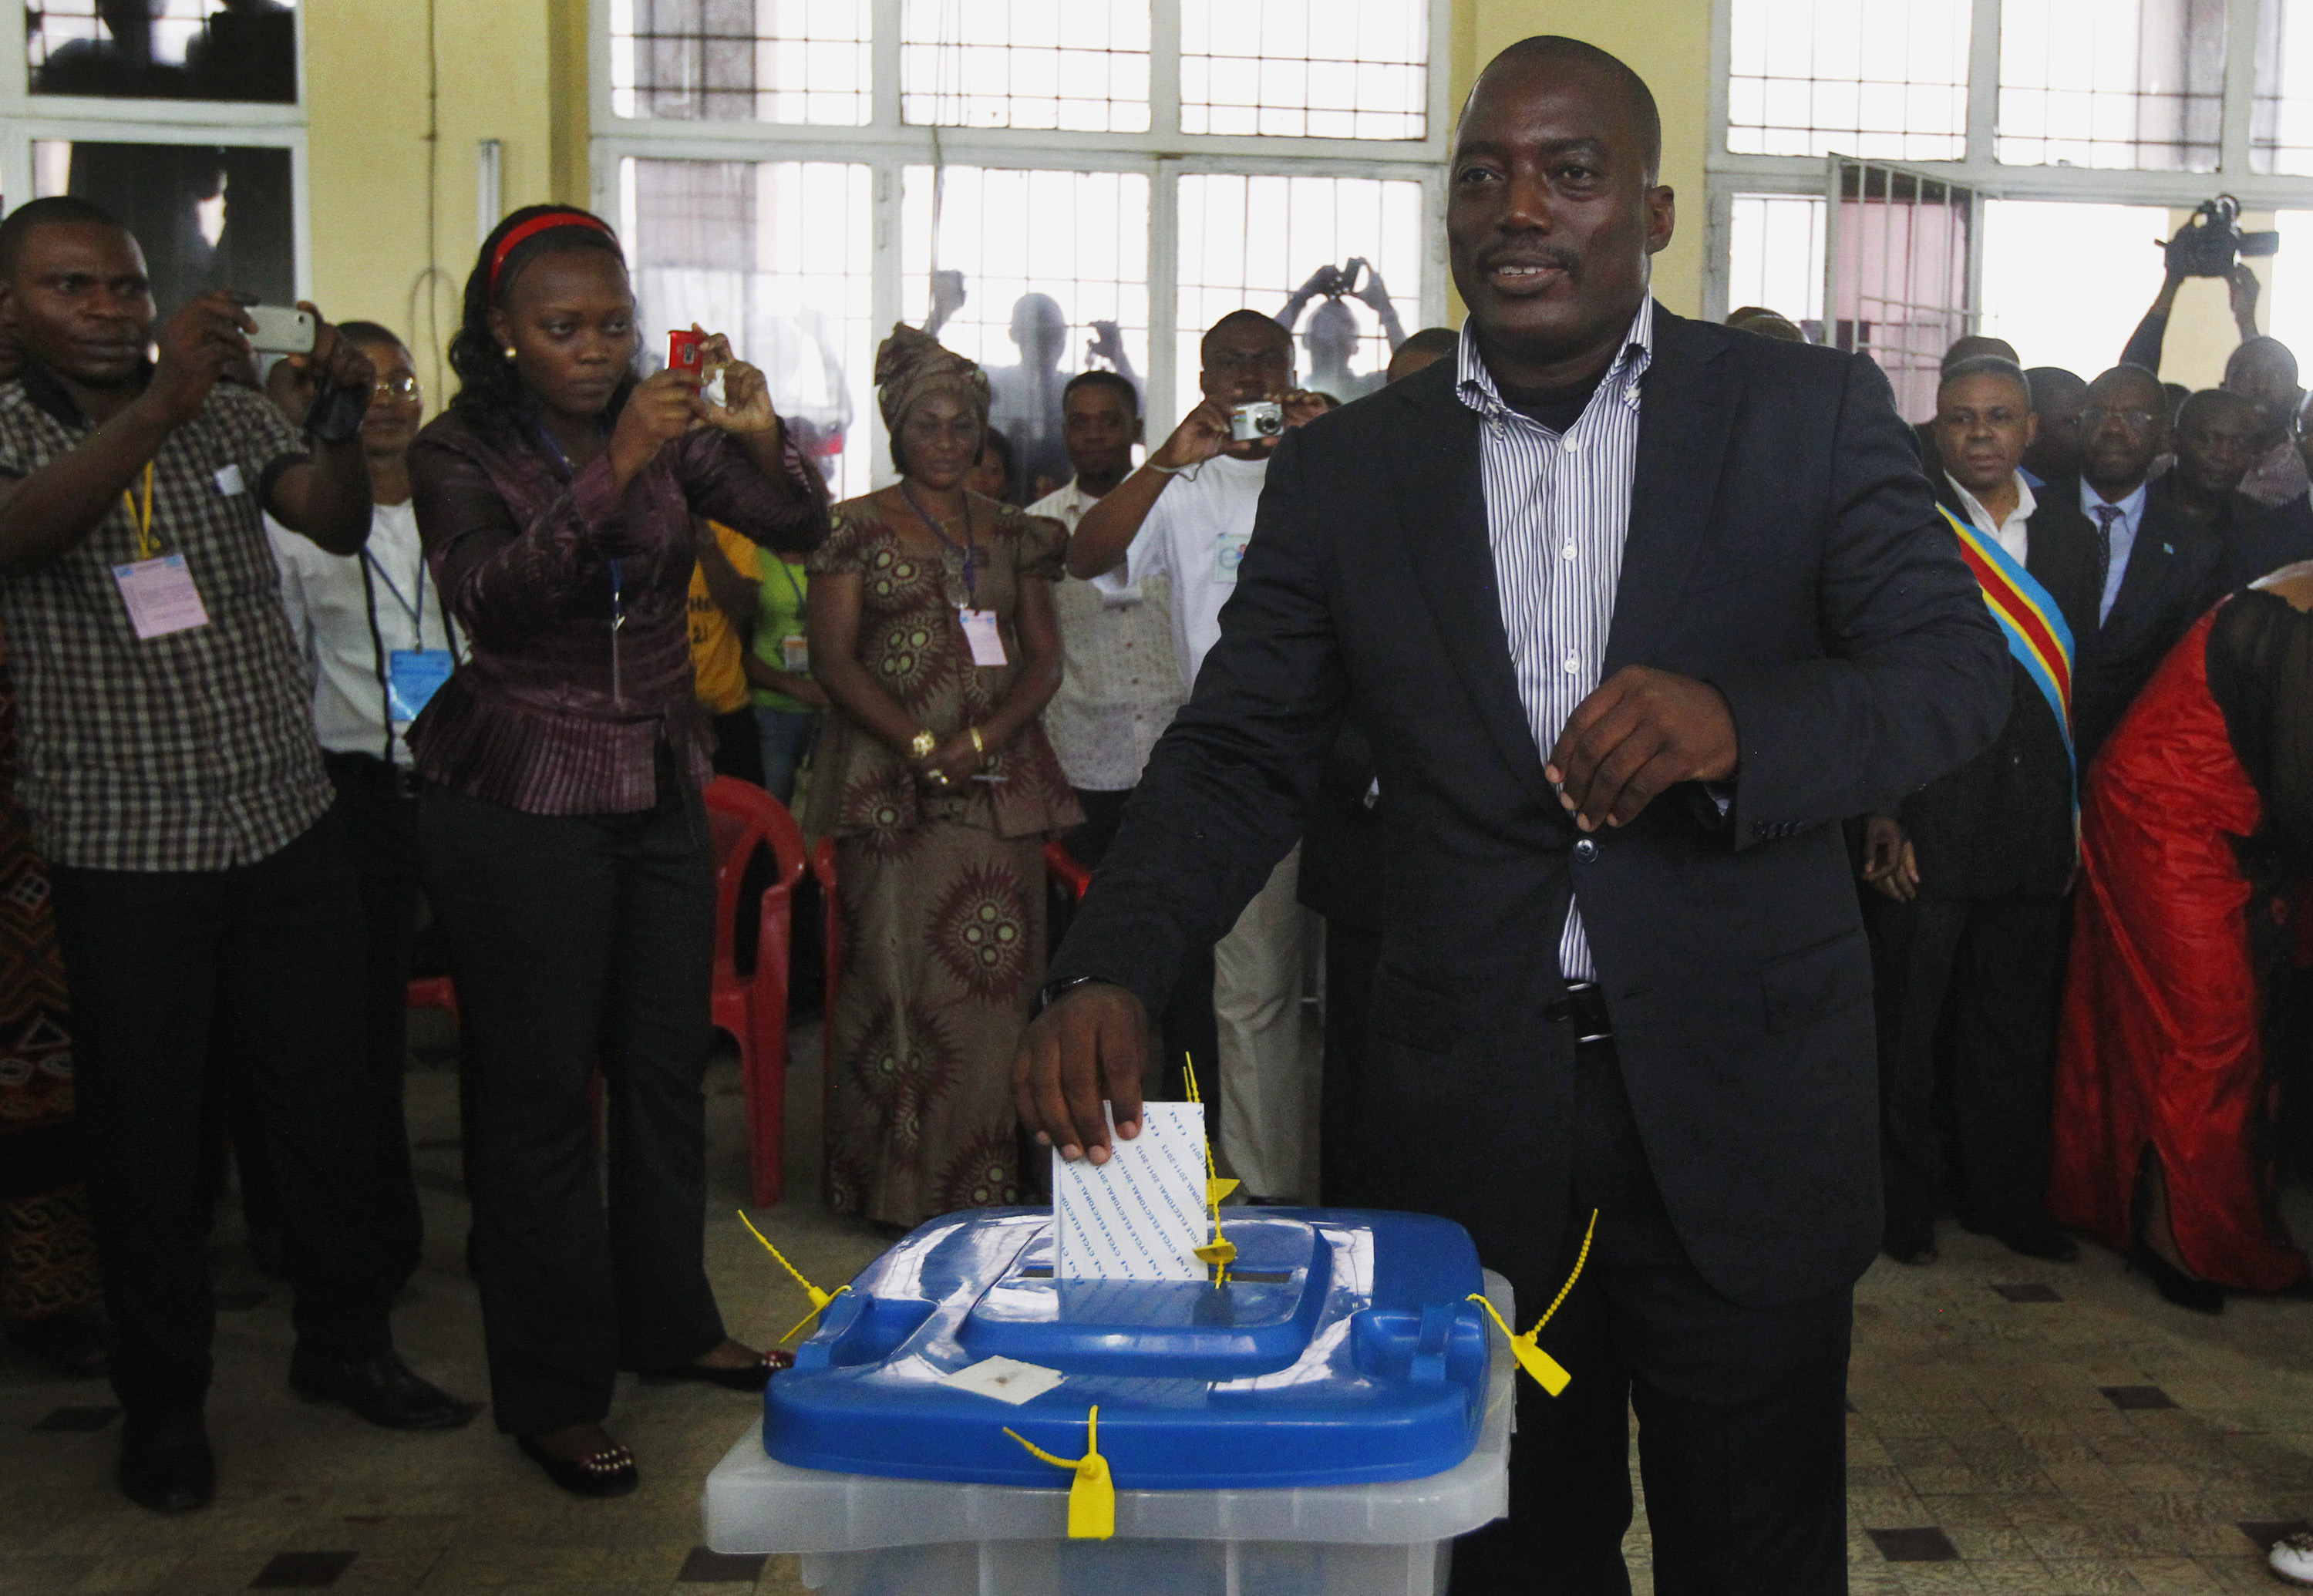 A First For Congo: Local Elections Announced for 2014